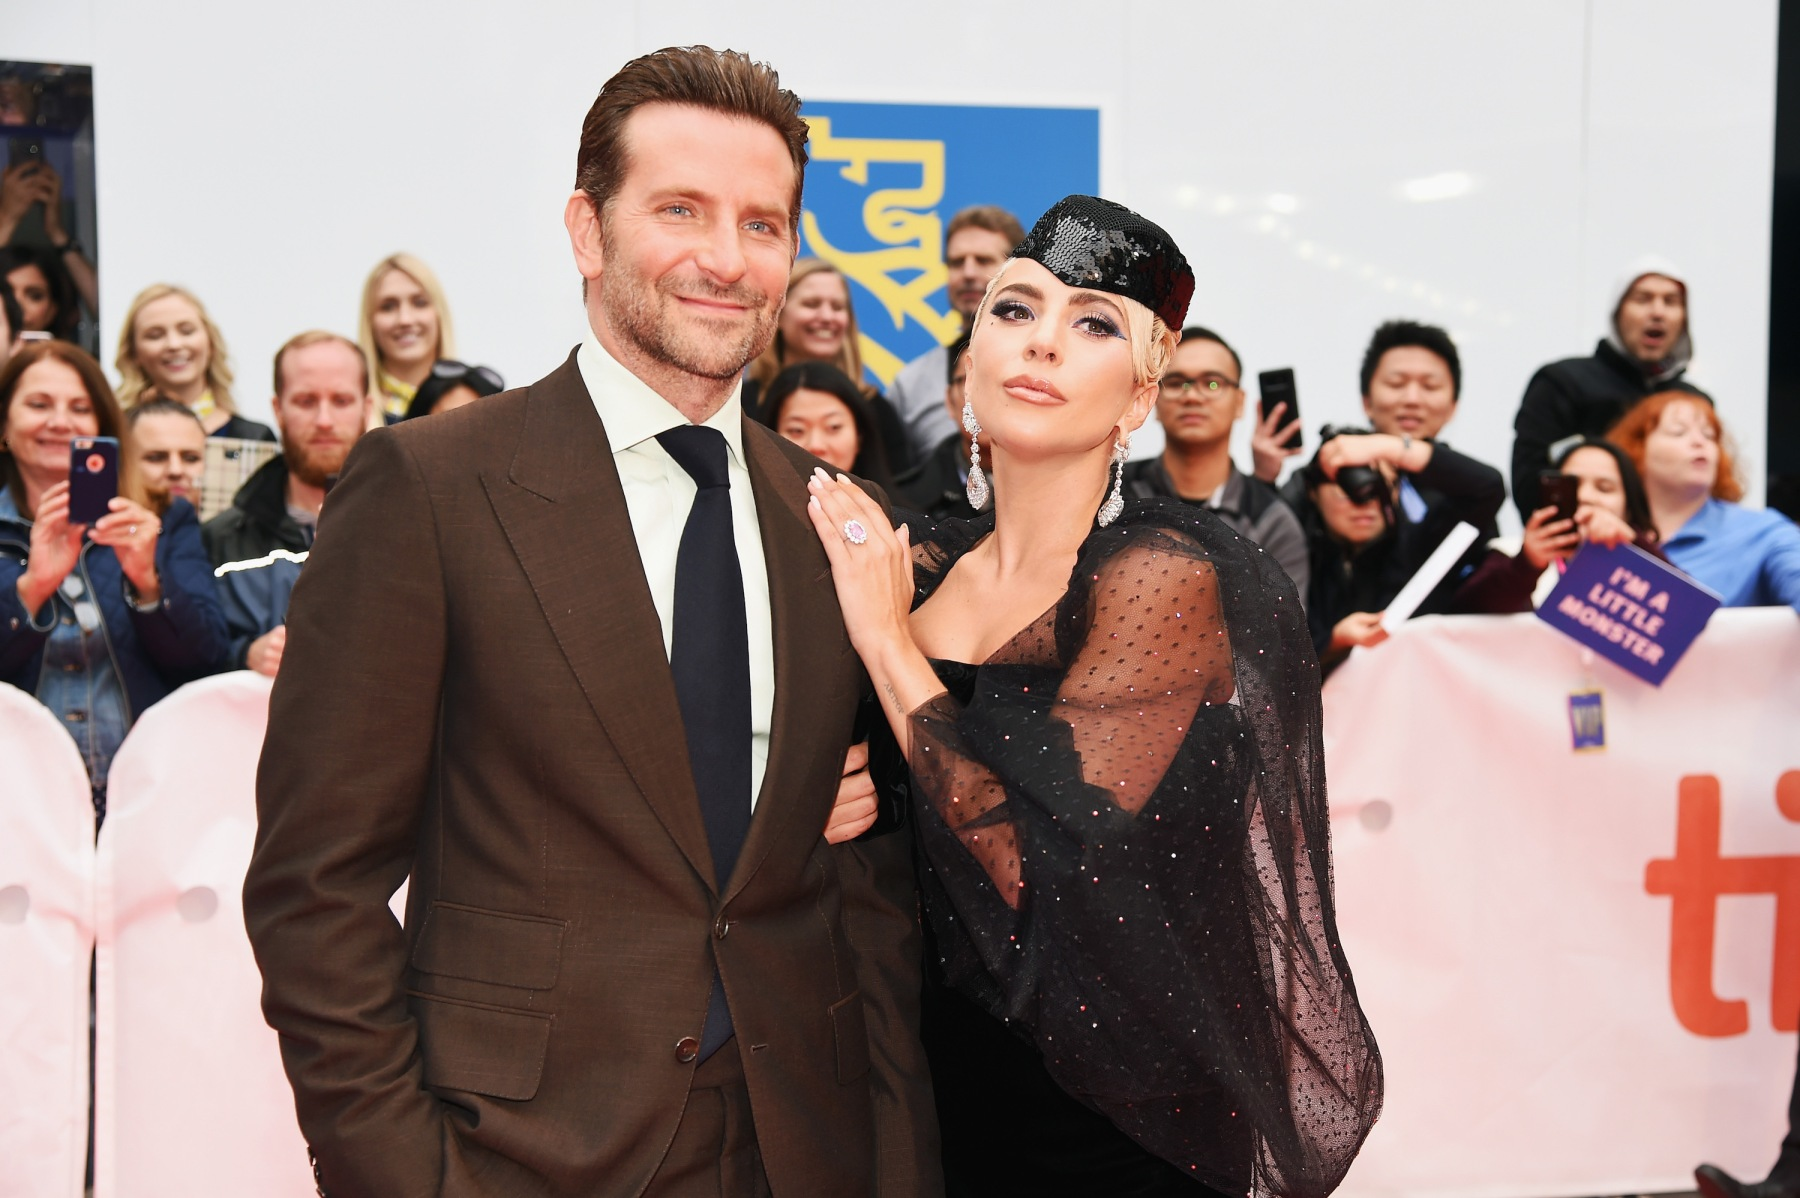 """Bradley Cooper (L) and Lady Gaga attend the """"A Star Is Born"""" premiere during 2018 Toronto International Film Festival at Roy Thomson Hall on September 9, 2018 in Toronto, Canada.  (Photo by Kevin Winter/WireImage)"""